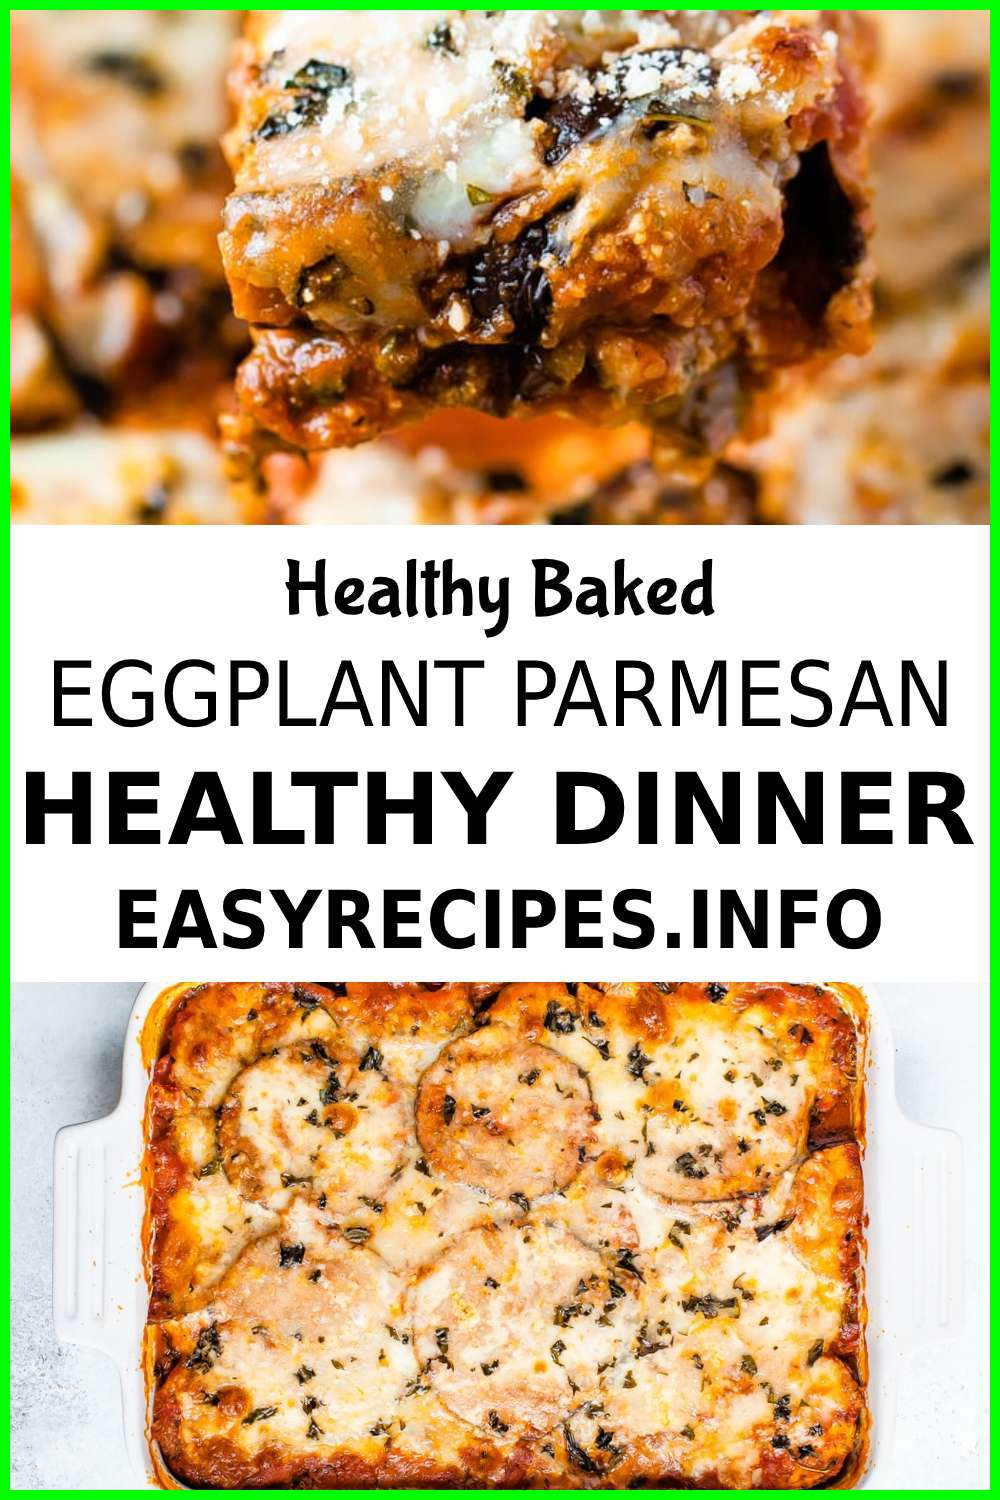 healthy dinner recipes, healthy dinner recipes easy, healthy dinner recipes with chicken, healthy dinner recipes for weight loss, healthy dinner recipes vegetarian, healthy dinner recipes for family, healthy dinner recipes for two, healthy dinner recipes for family eating clean